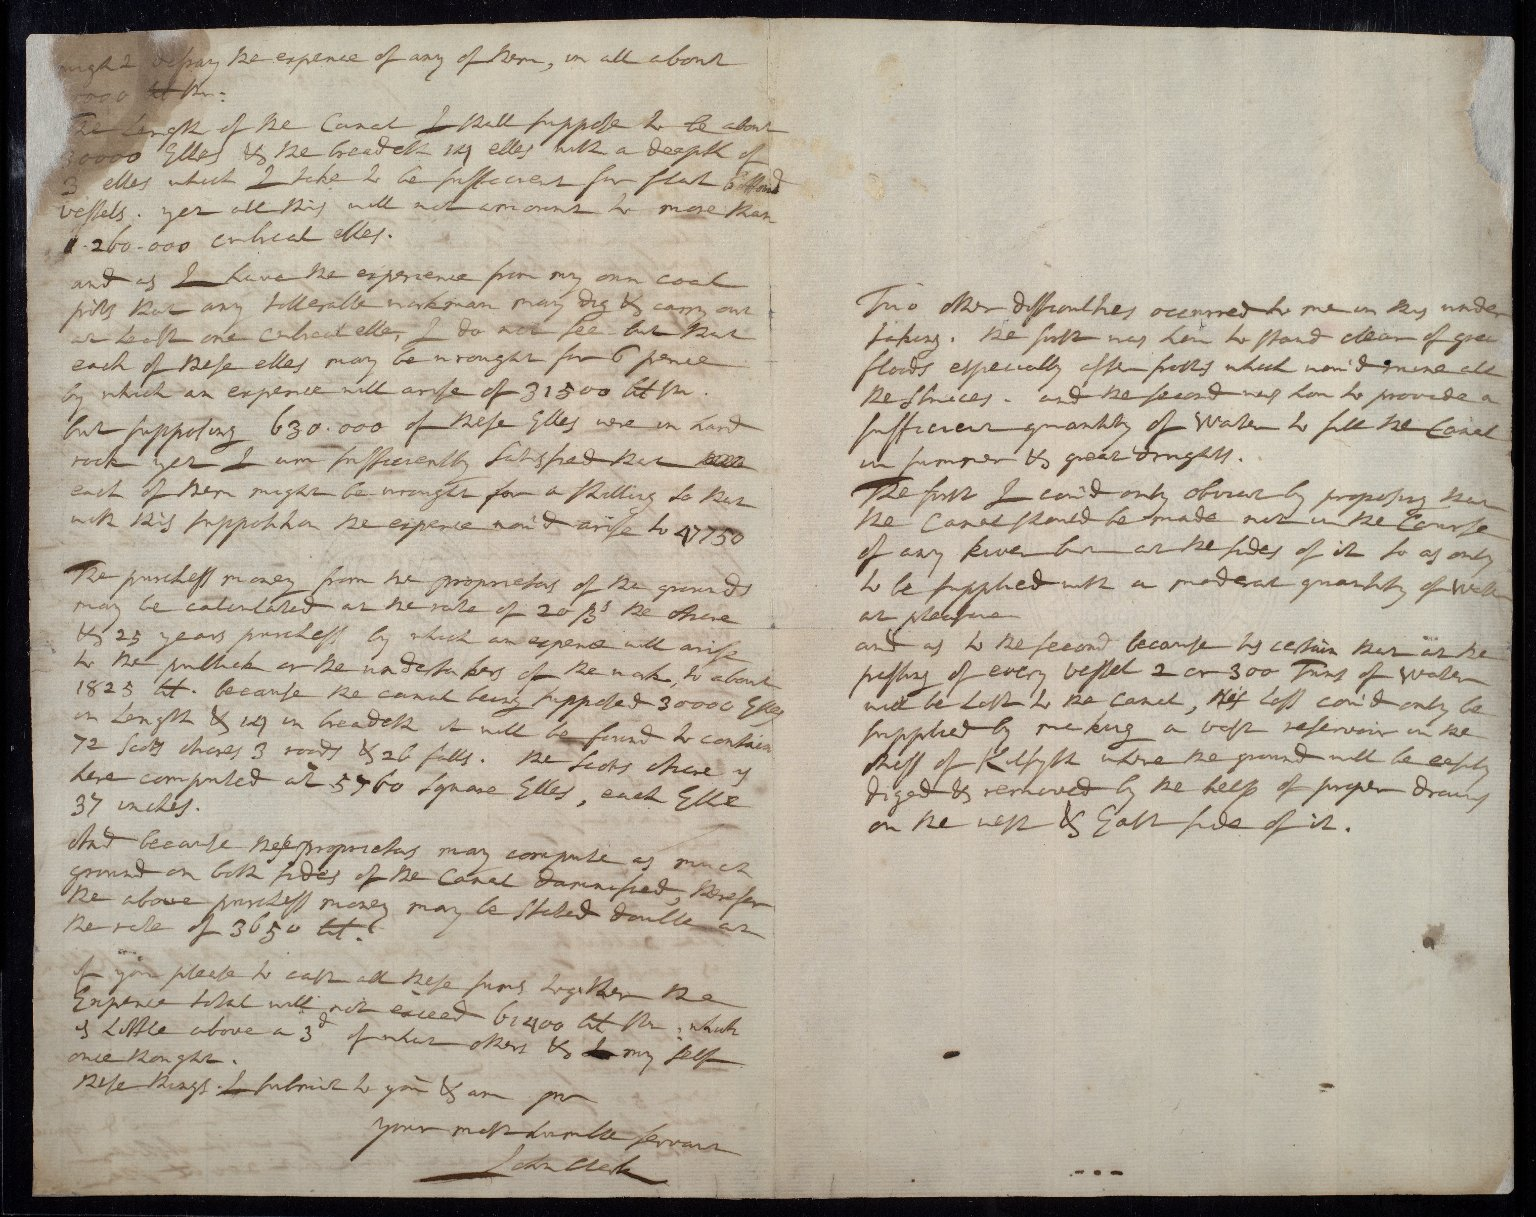 [Copy letter from Sir John Clerk to William Adam? concerning the Forth-Clyde canal project, [2 of 2]